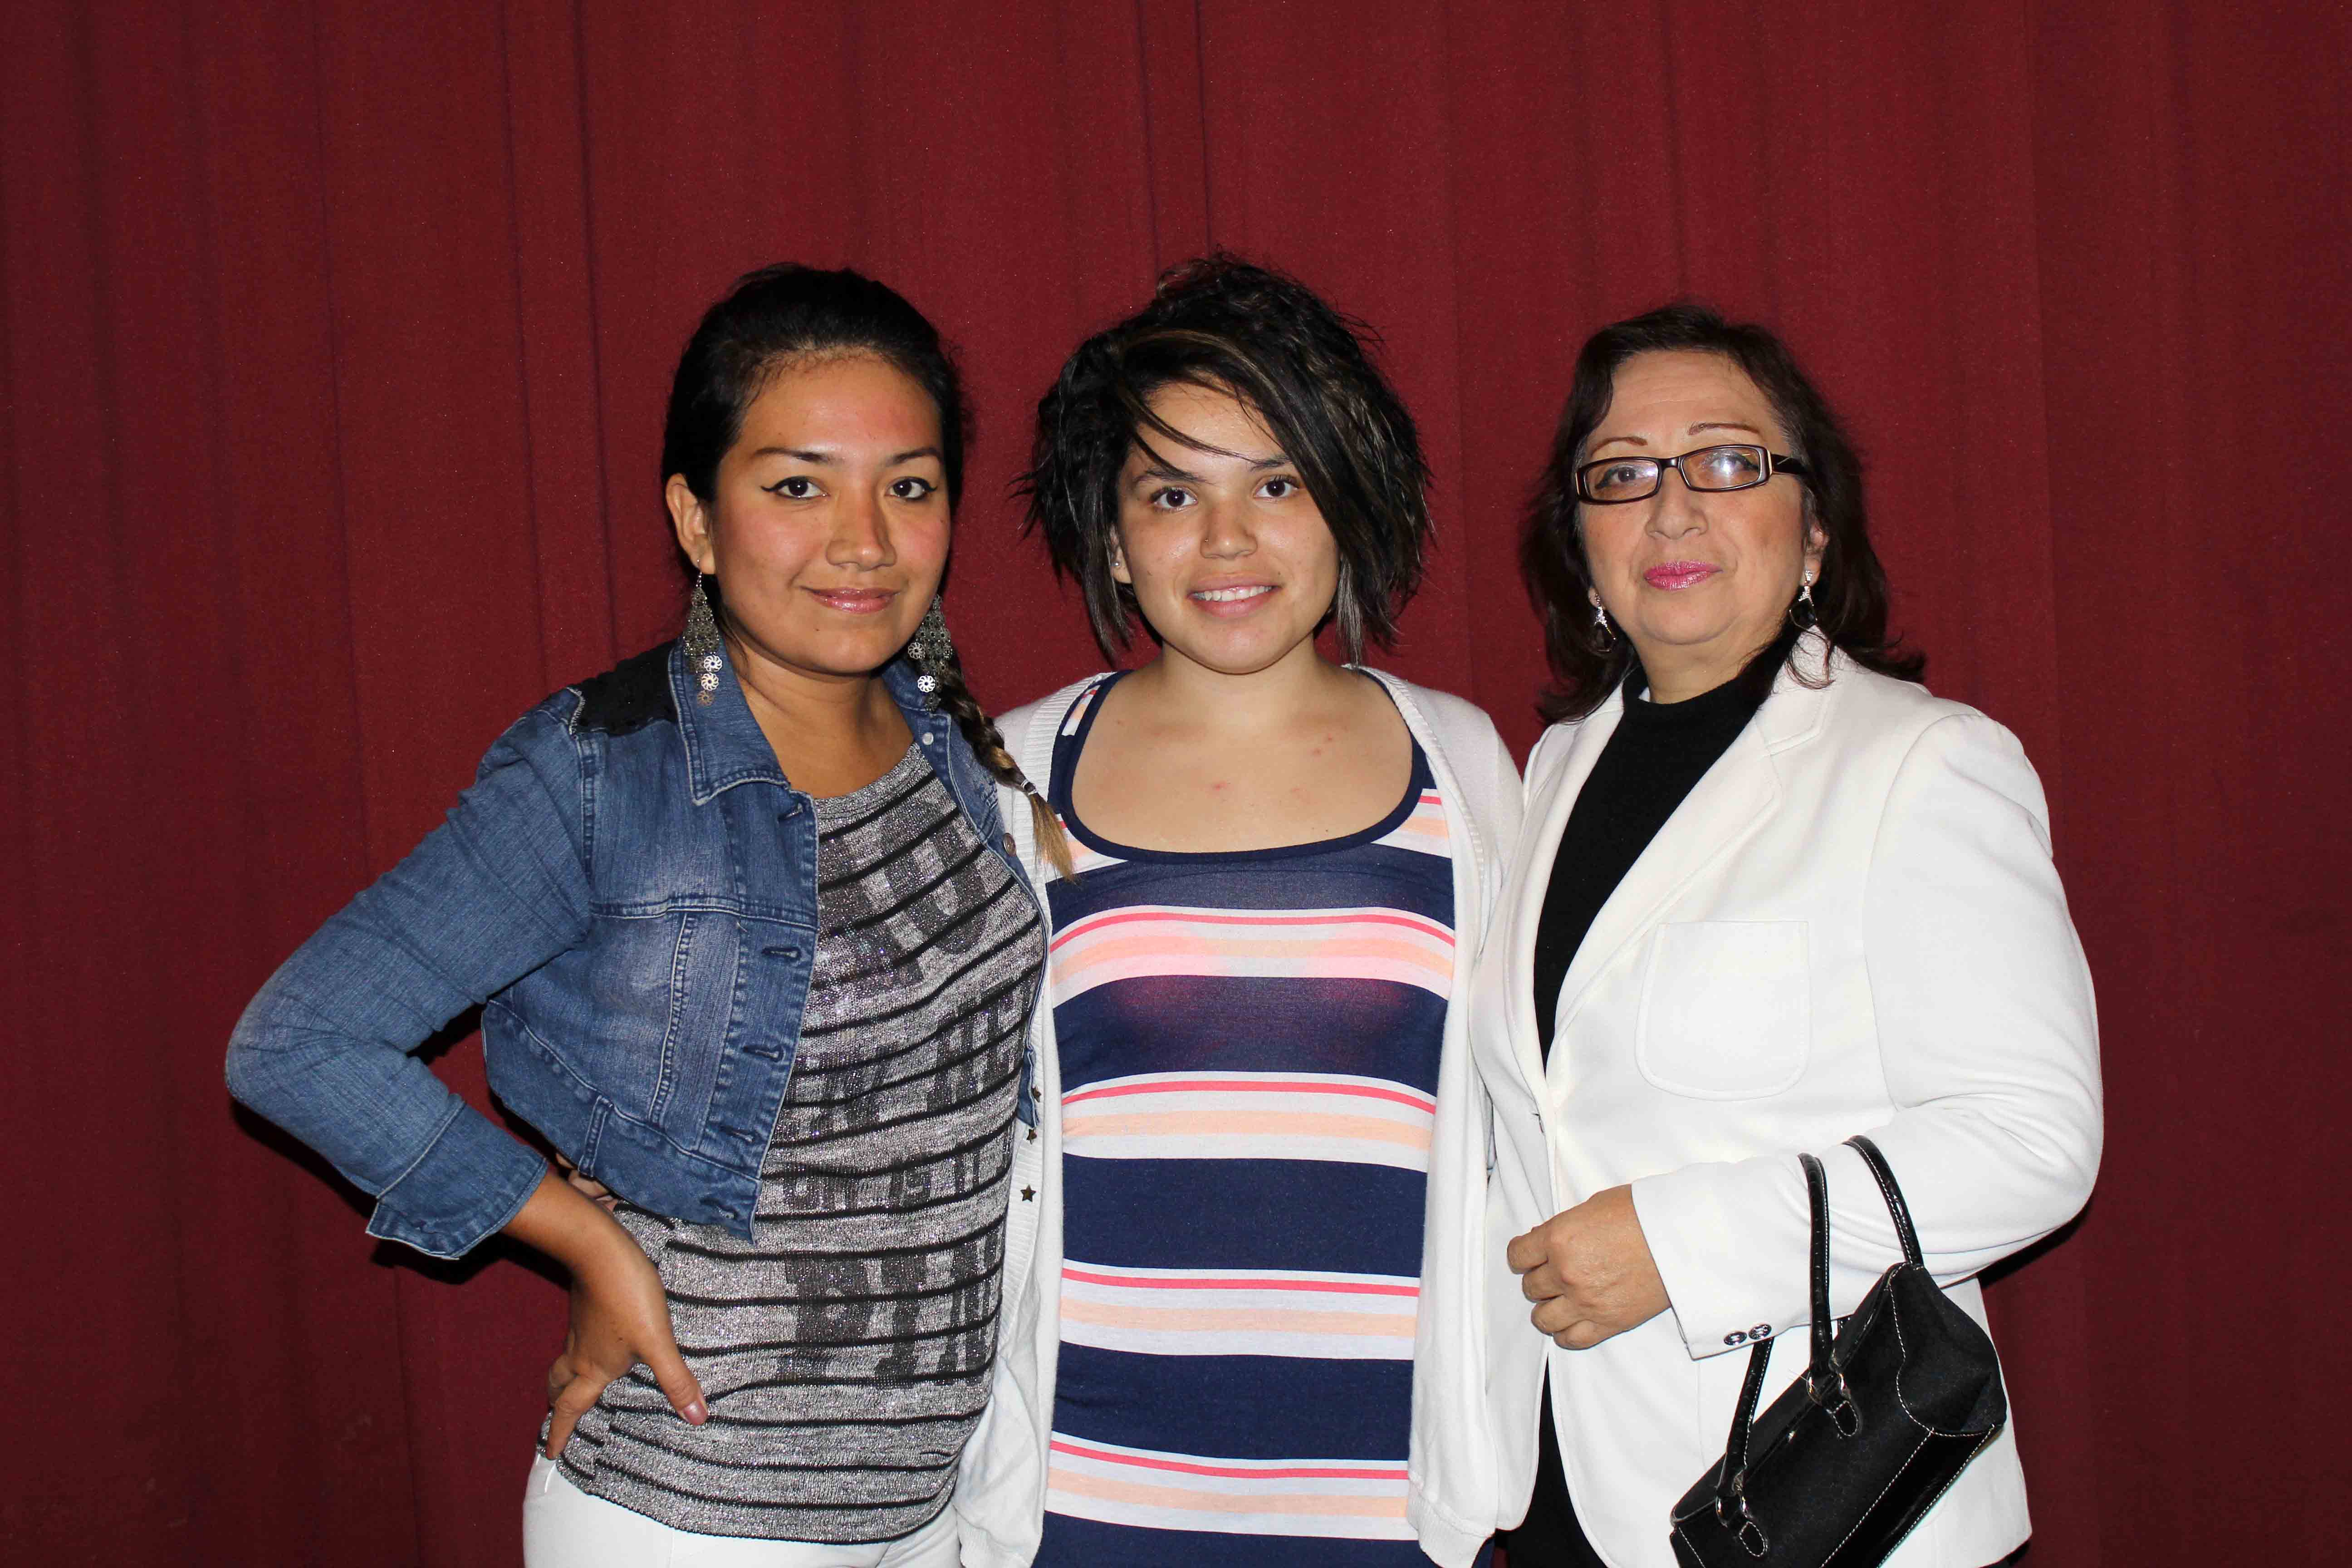 Hola directory of talent claudia morales - Edith With Her Host Sister Claudia And Host Mother Marisel Avalos Mendocilla